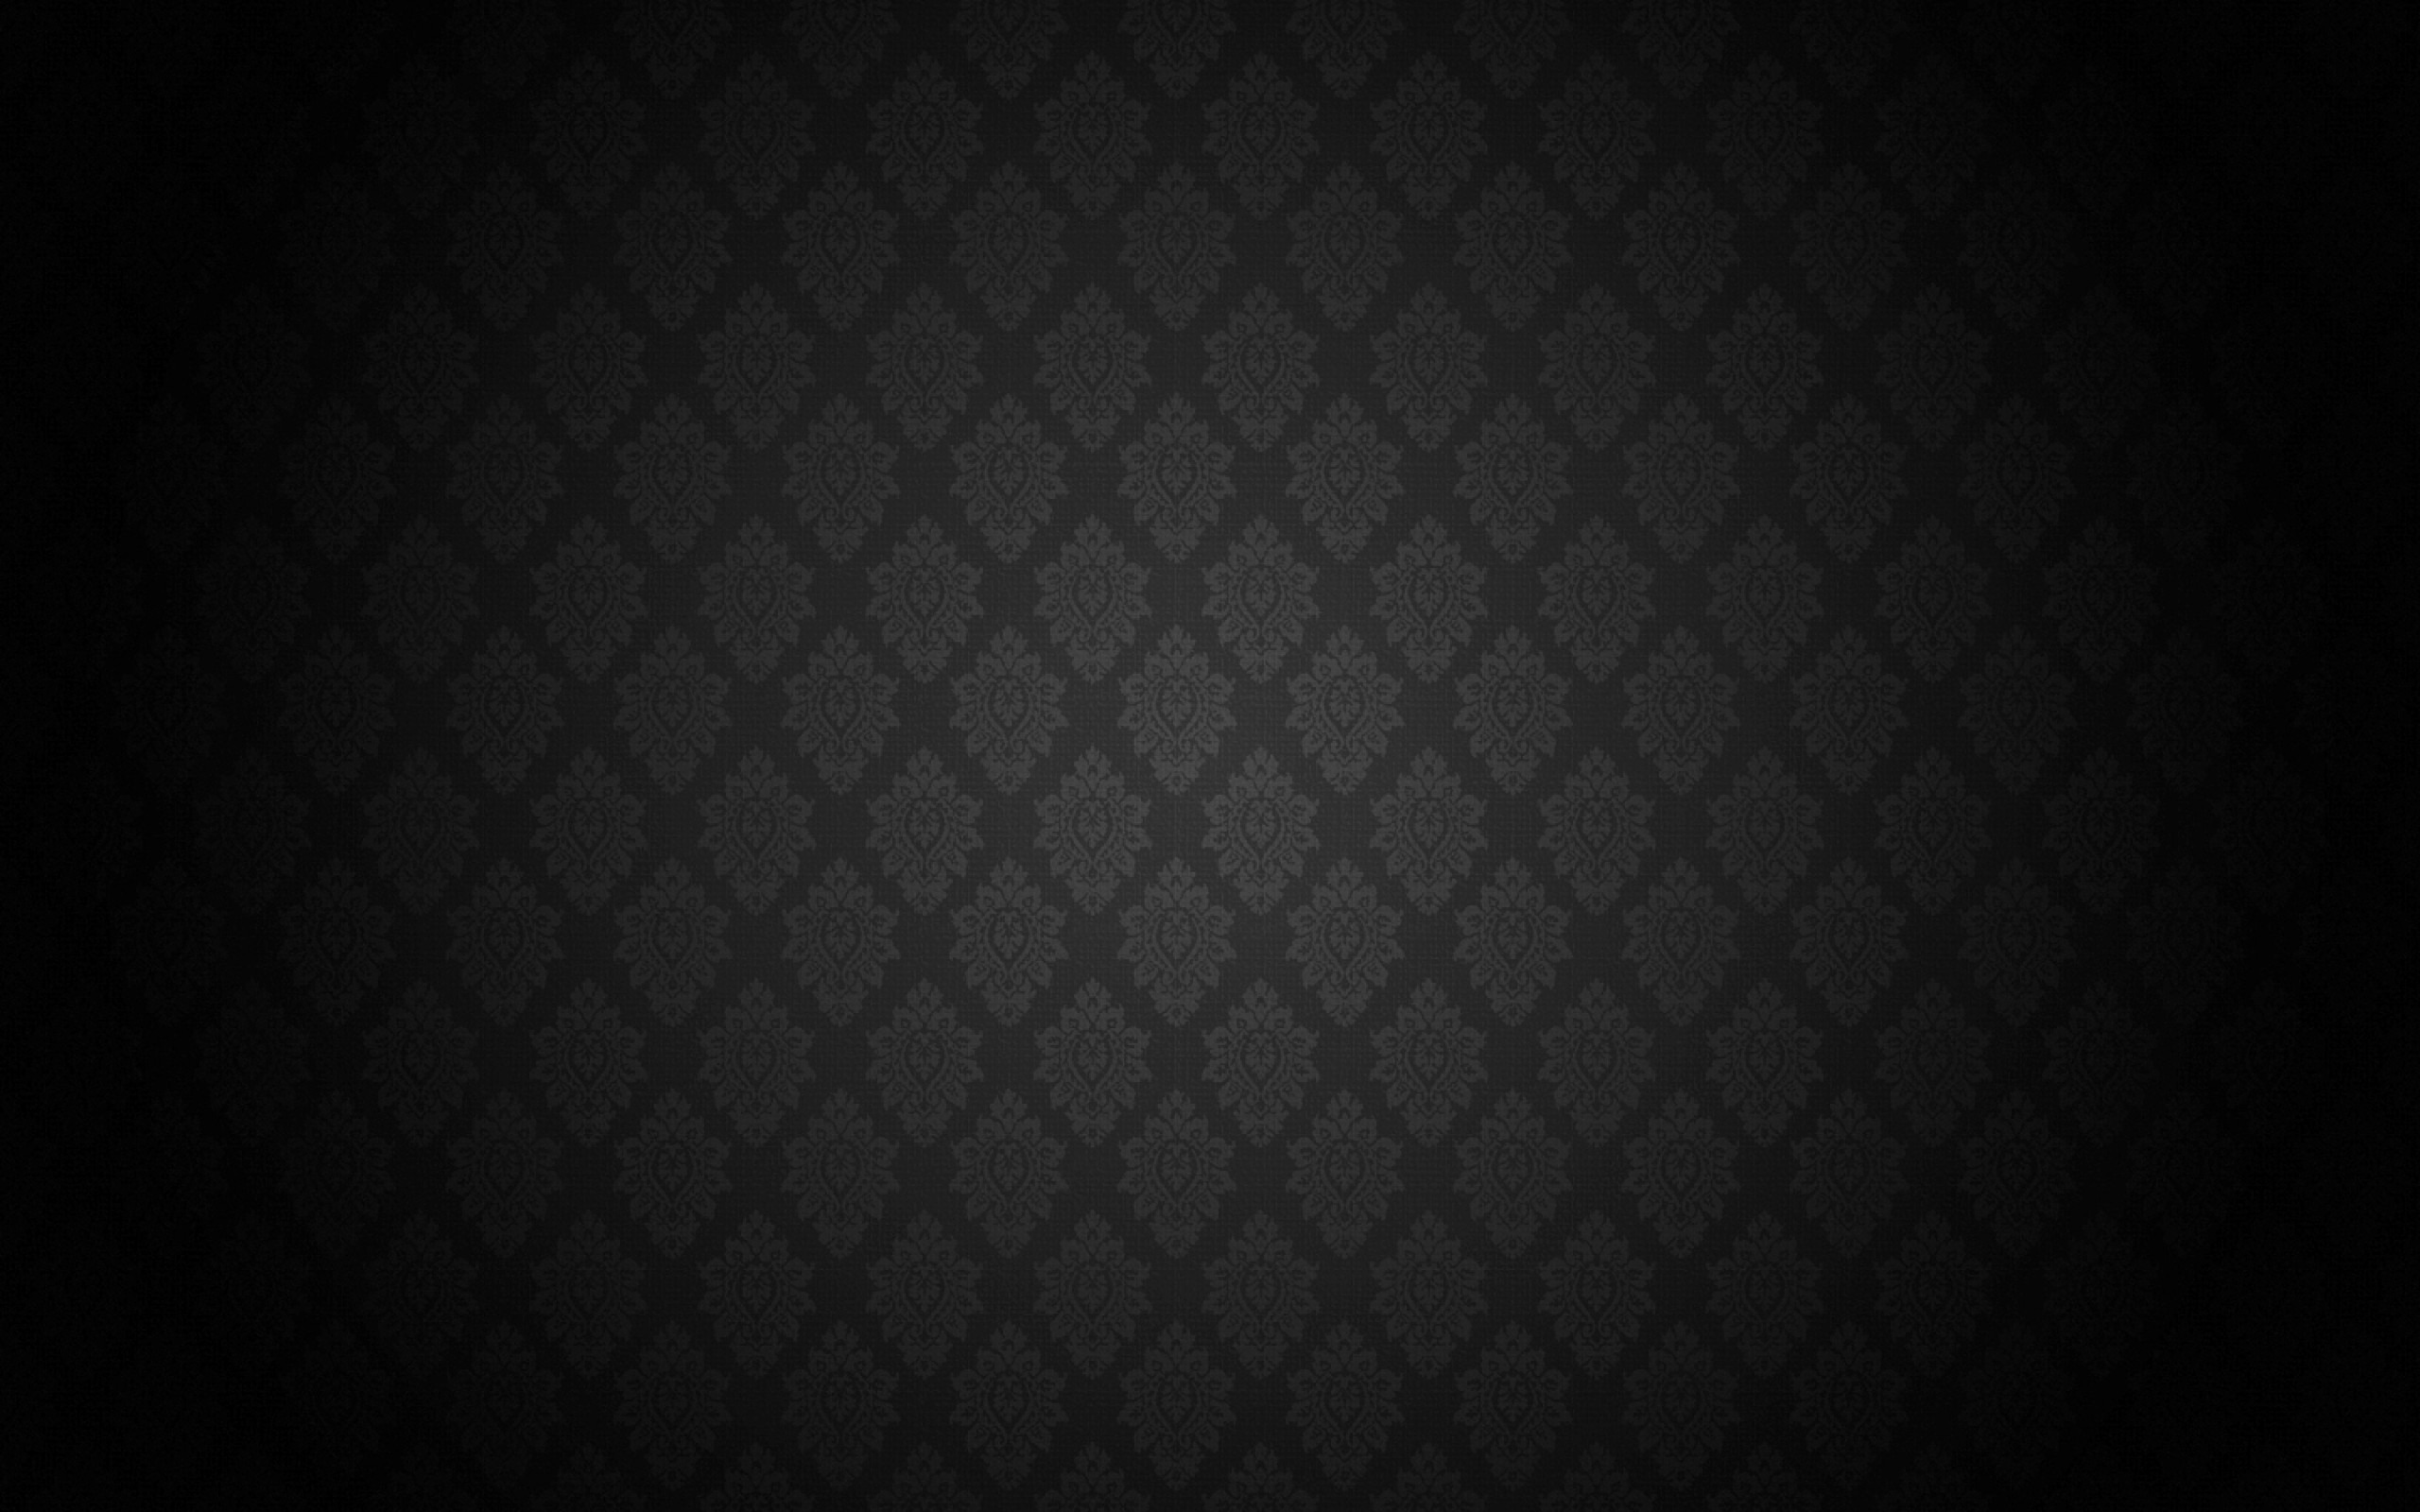 free black and white backgrounds wallpapersafari